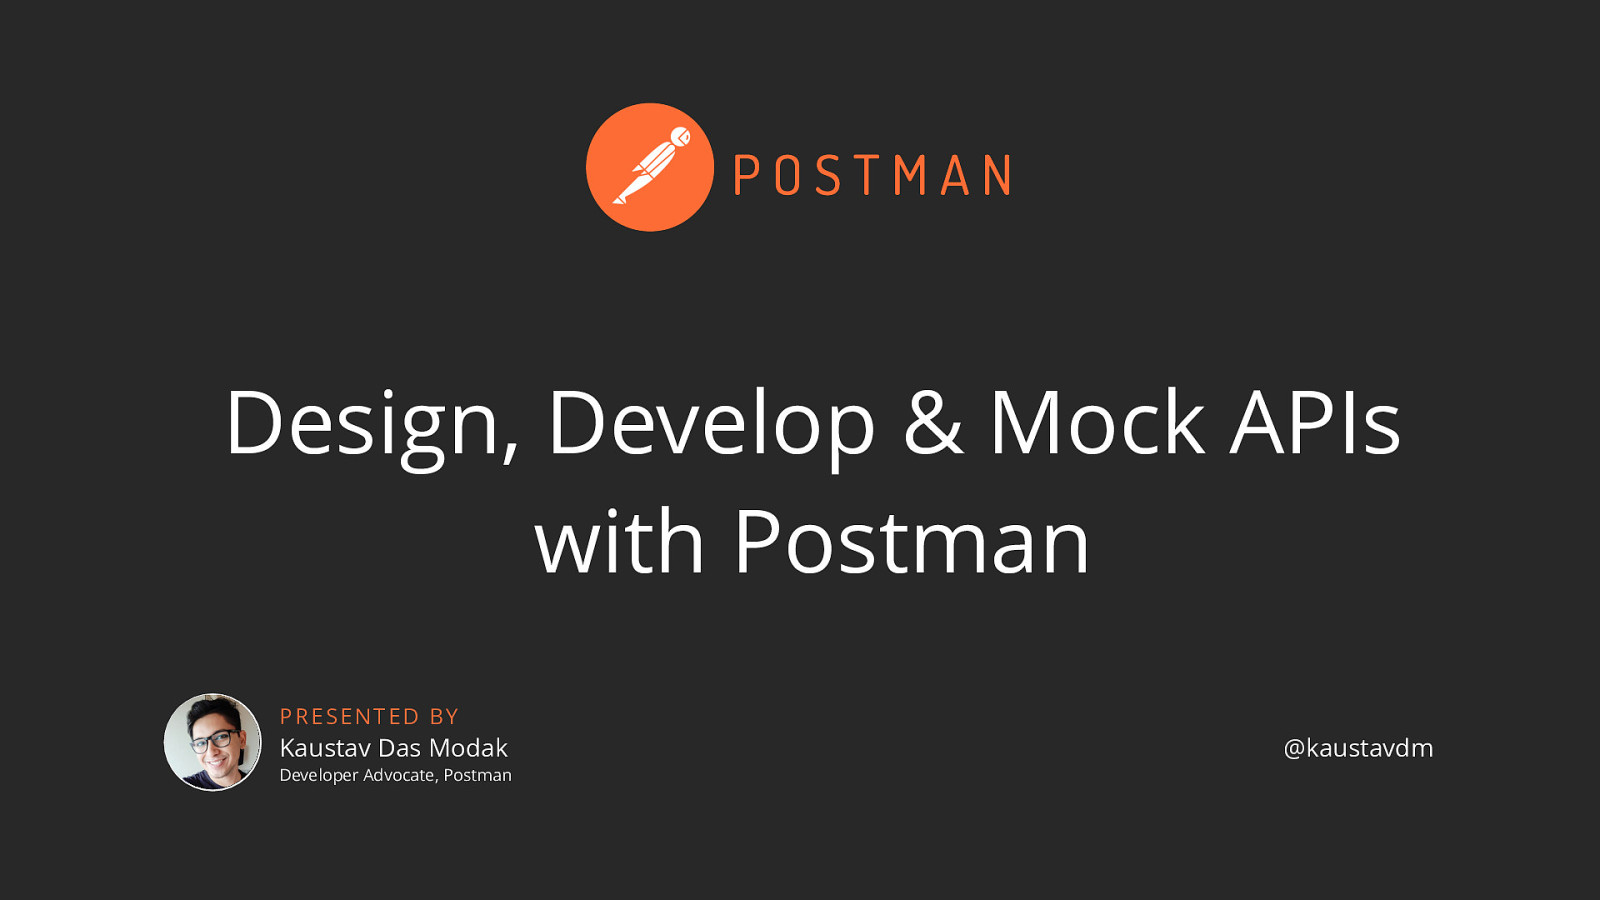 Design, Develop and Mock APIs with Postman (Workshop)